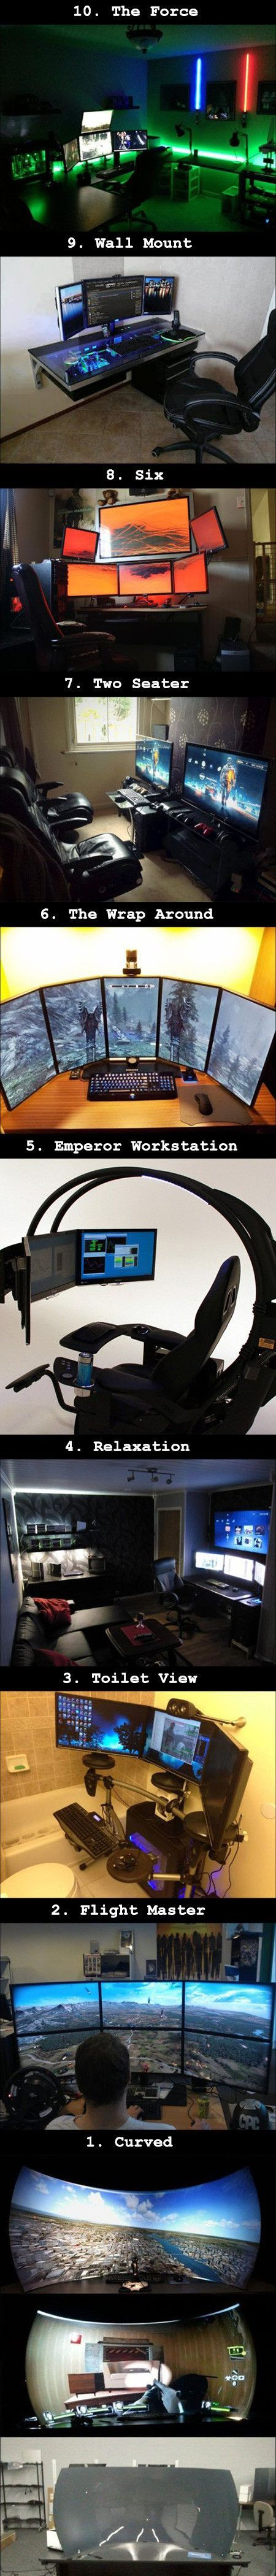 10 Awesome Computer Setups Any Geek Would Love - TechEBlog Check out the multi-arm monitor mount at loctek.us